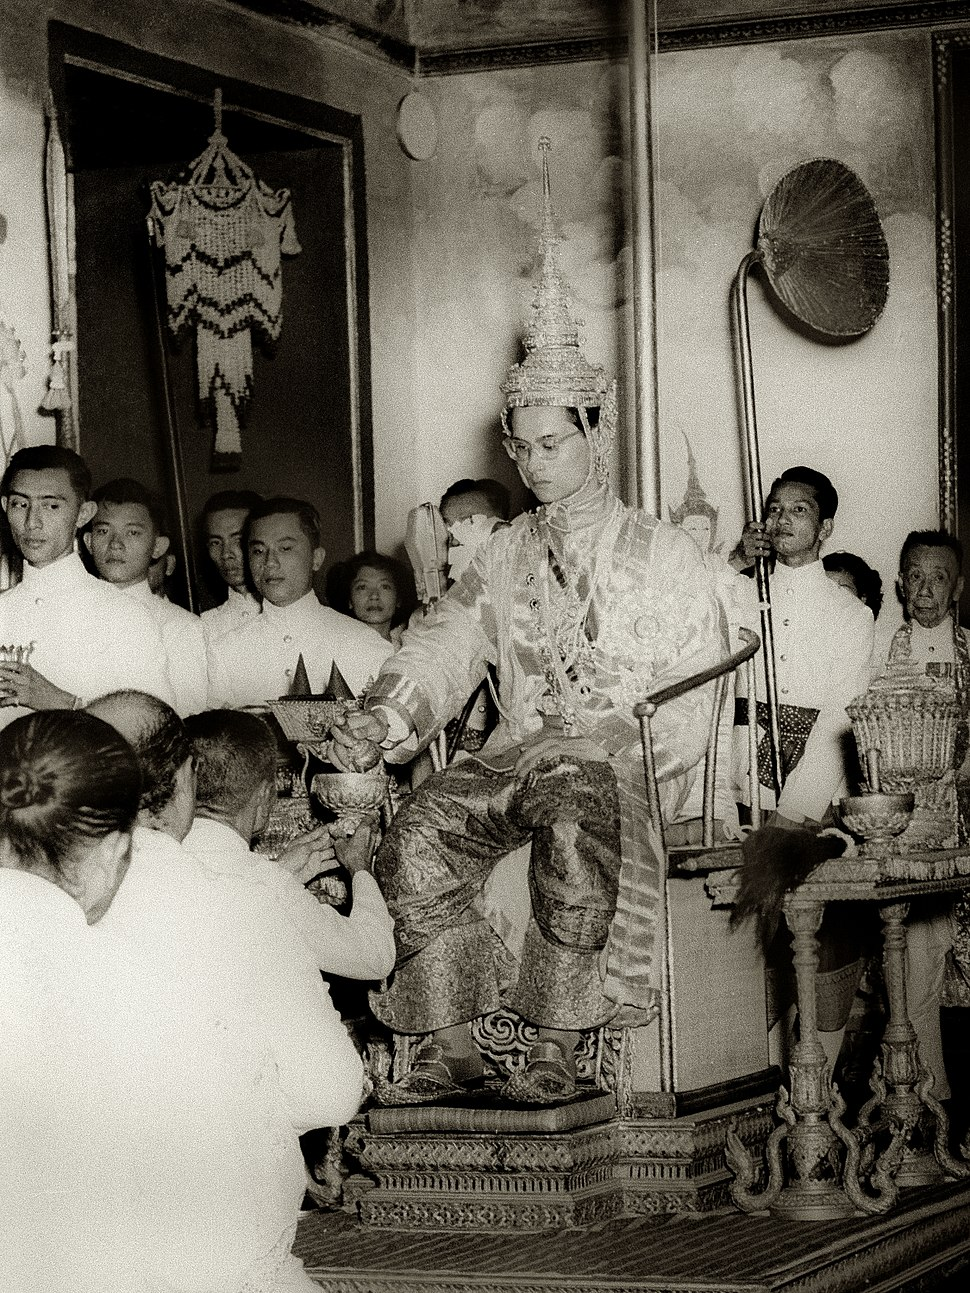 King Rama IX being presented with regalia at coronation